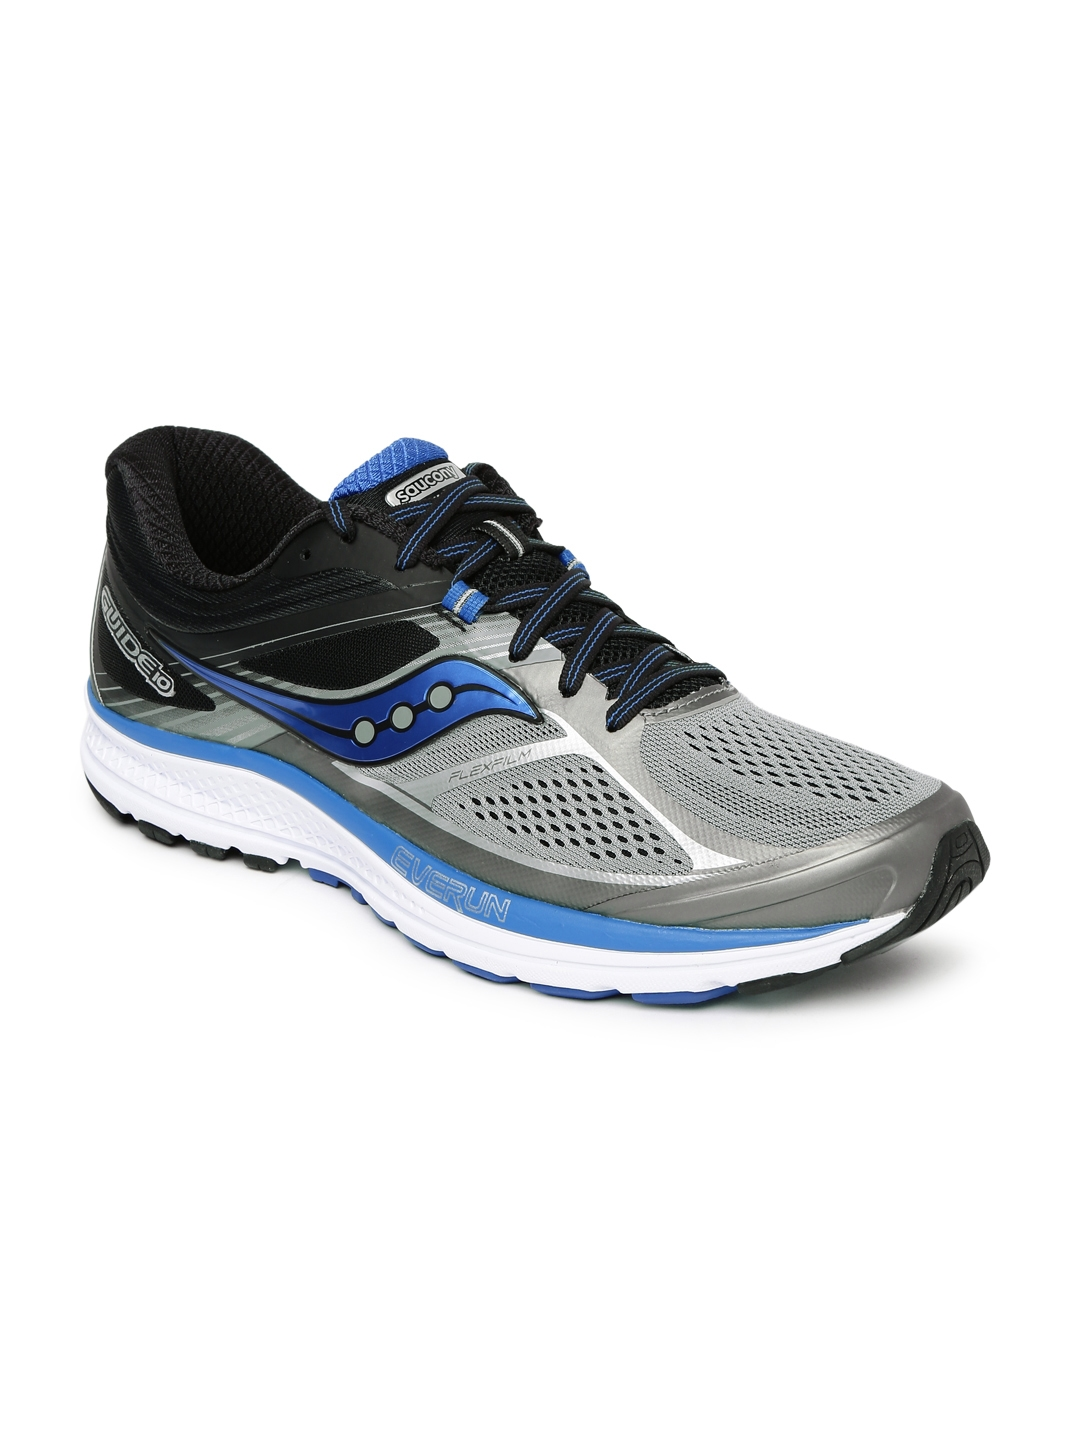 495a70cd Buy Saucony Men Grey & Black Guide 10 Running Shoes - Sports Shoes ...